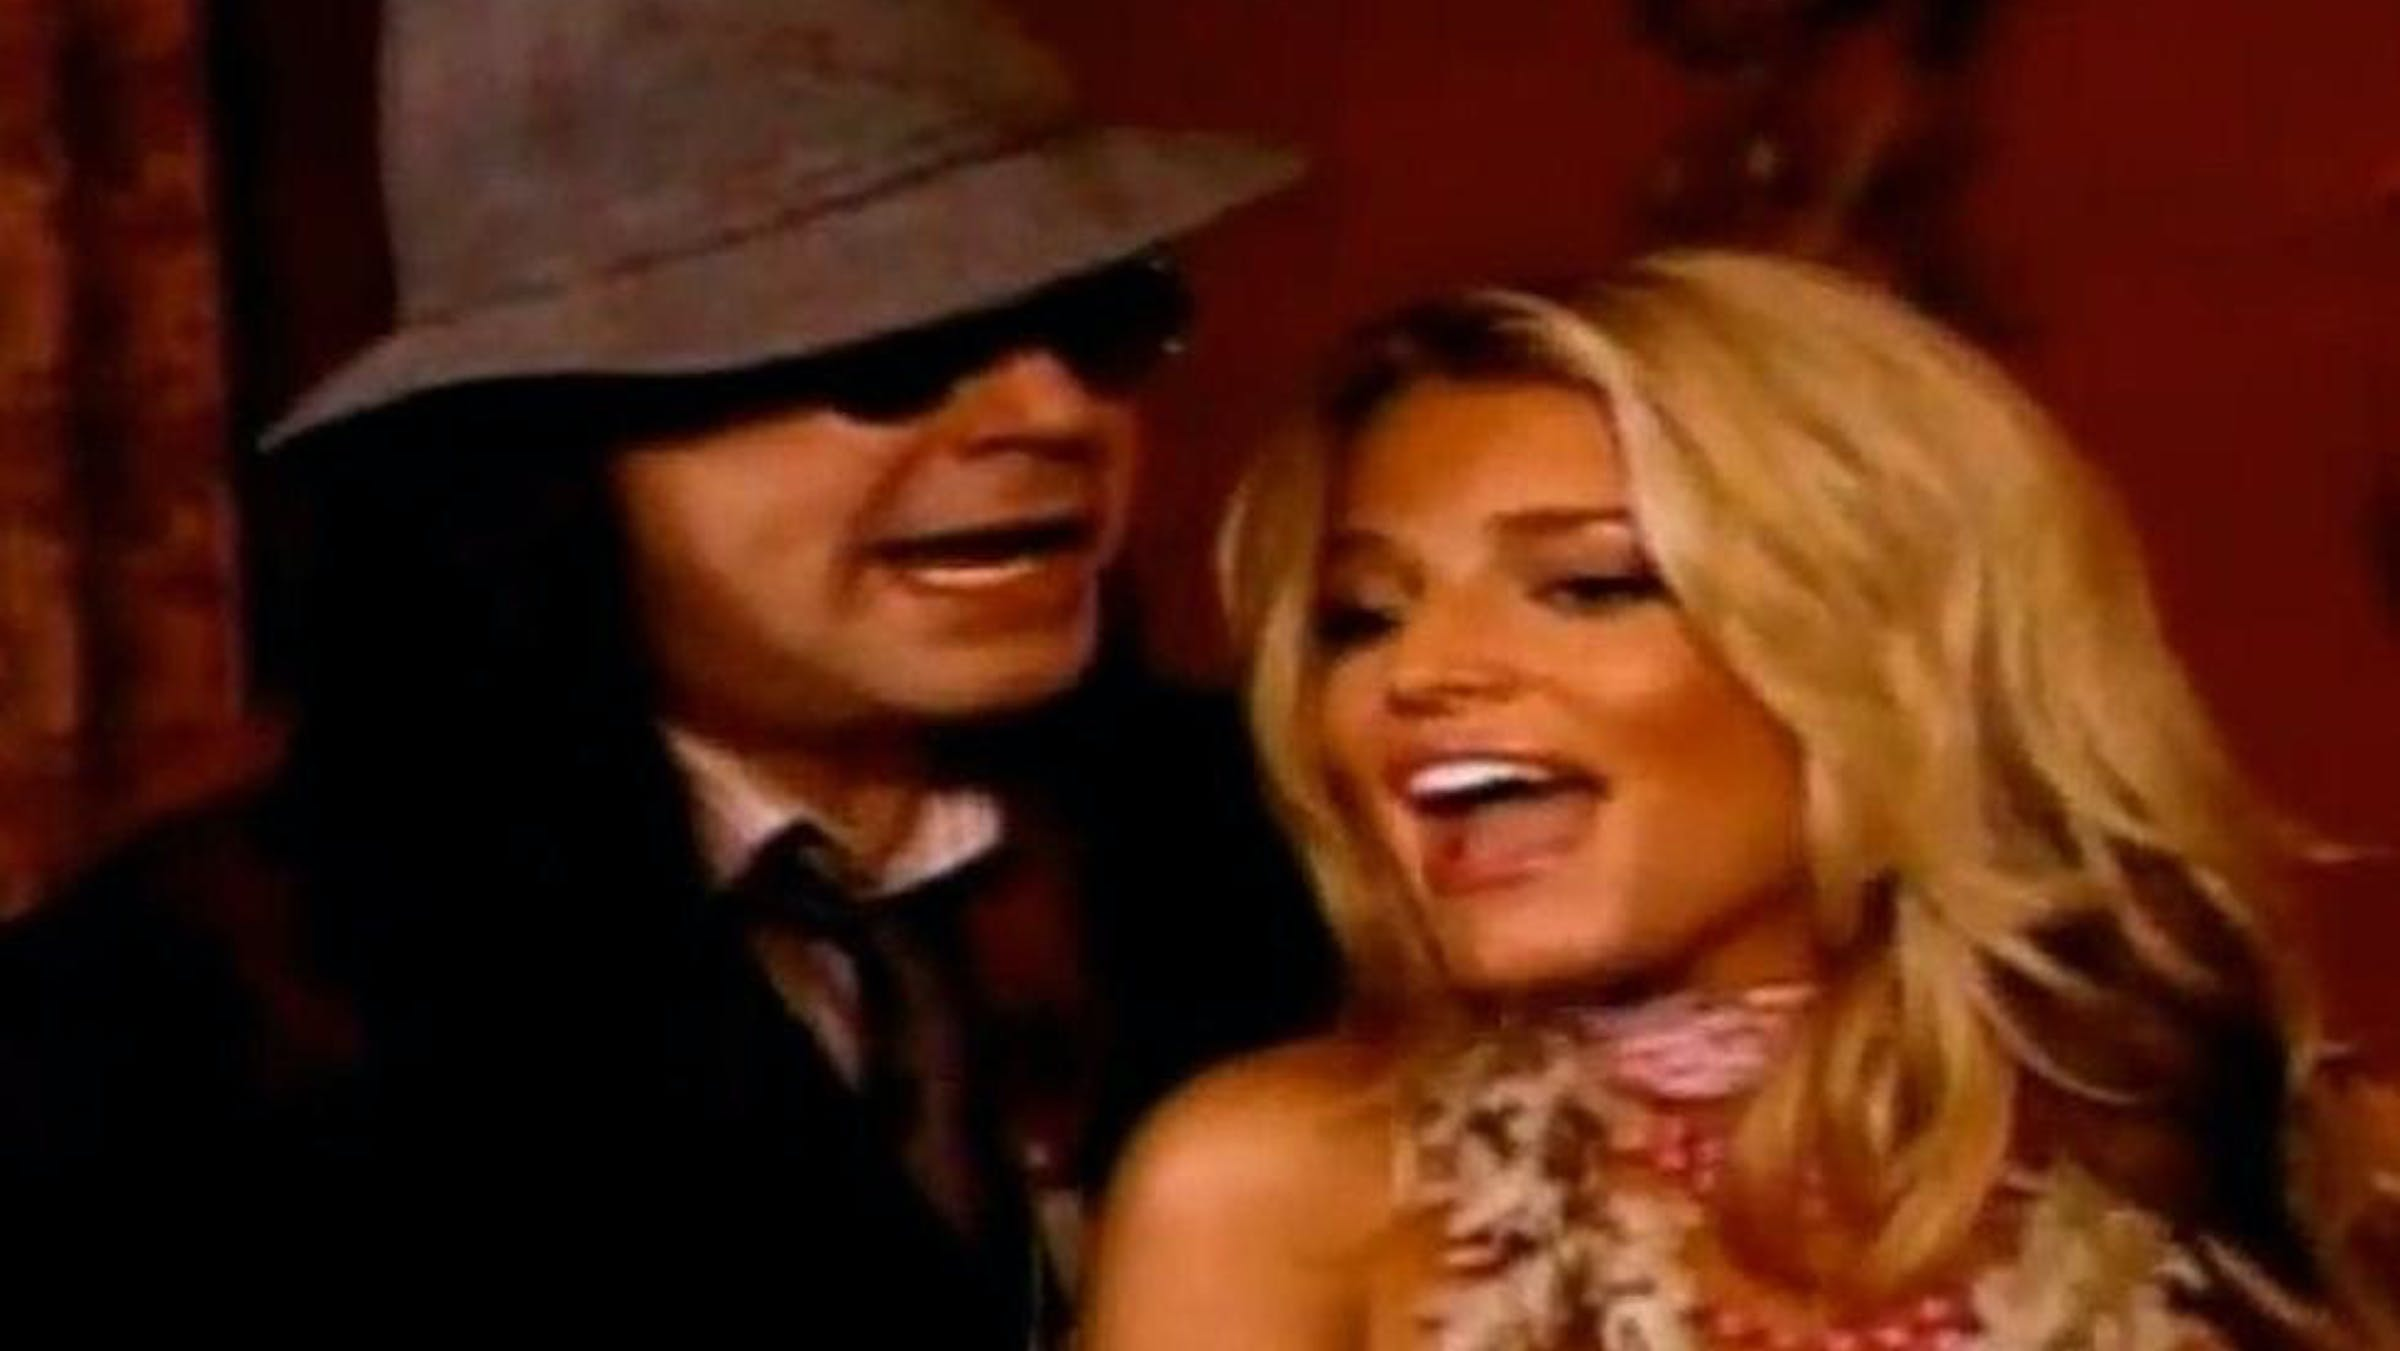 A Deep Dive Into The Video For Ozzy Osbourne And Jessica Simpson's Winter Wonderland